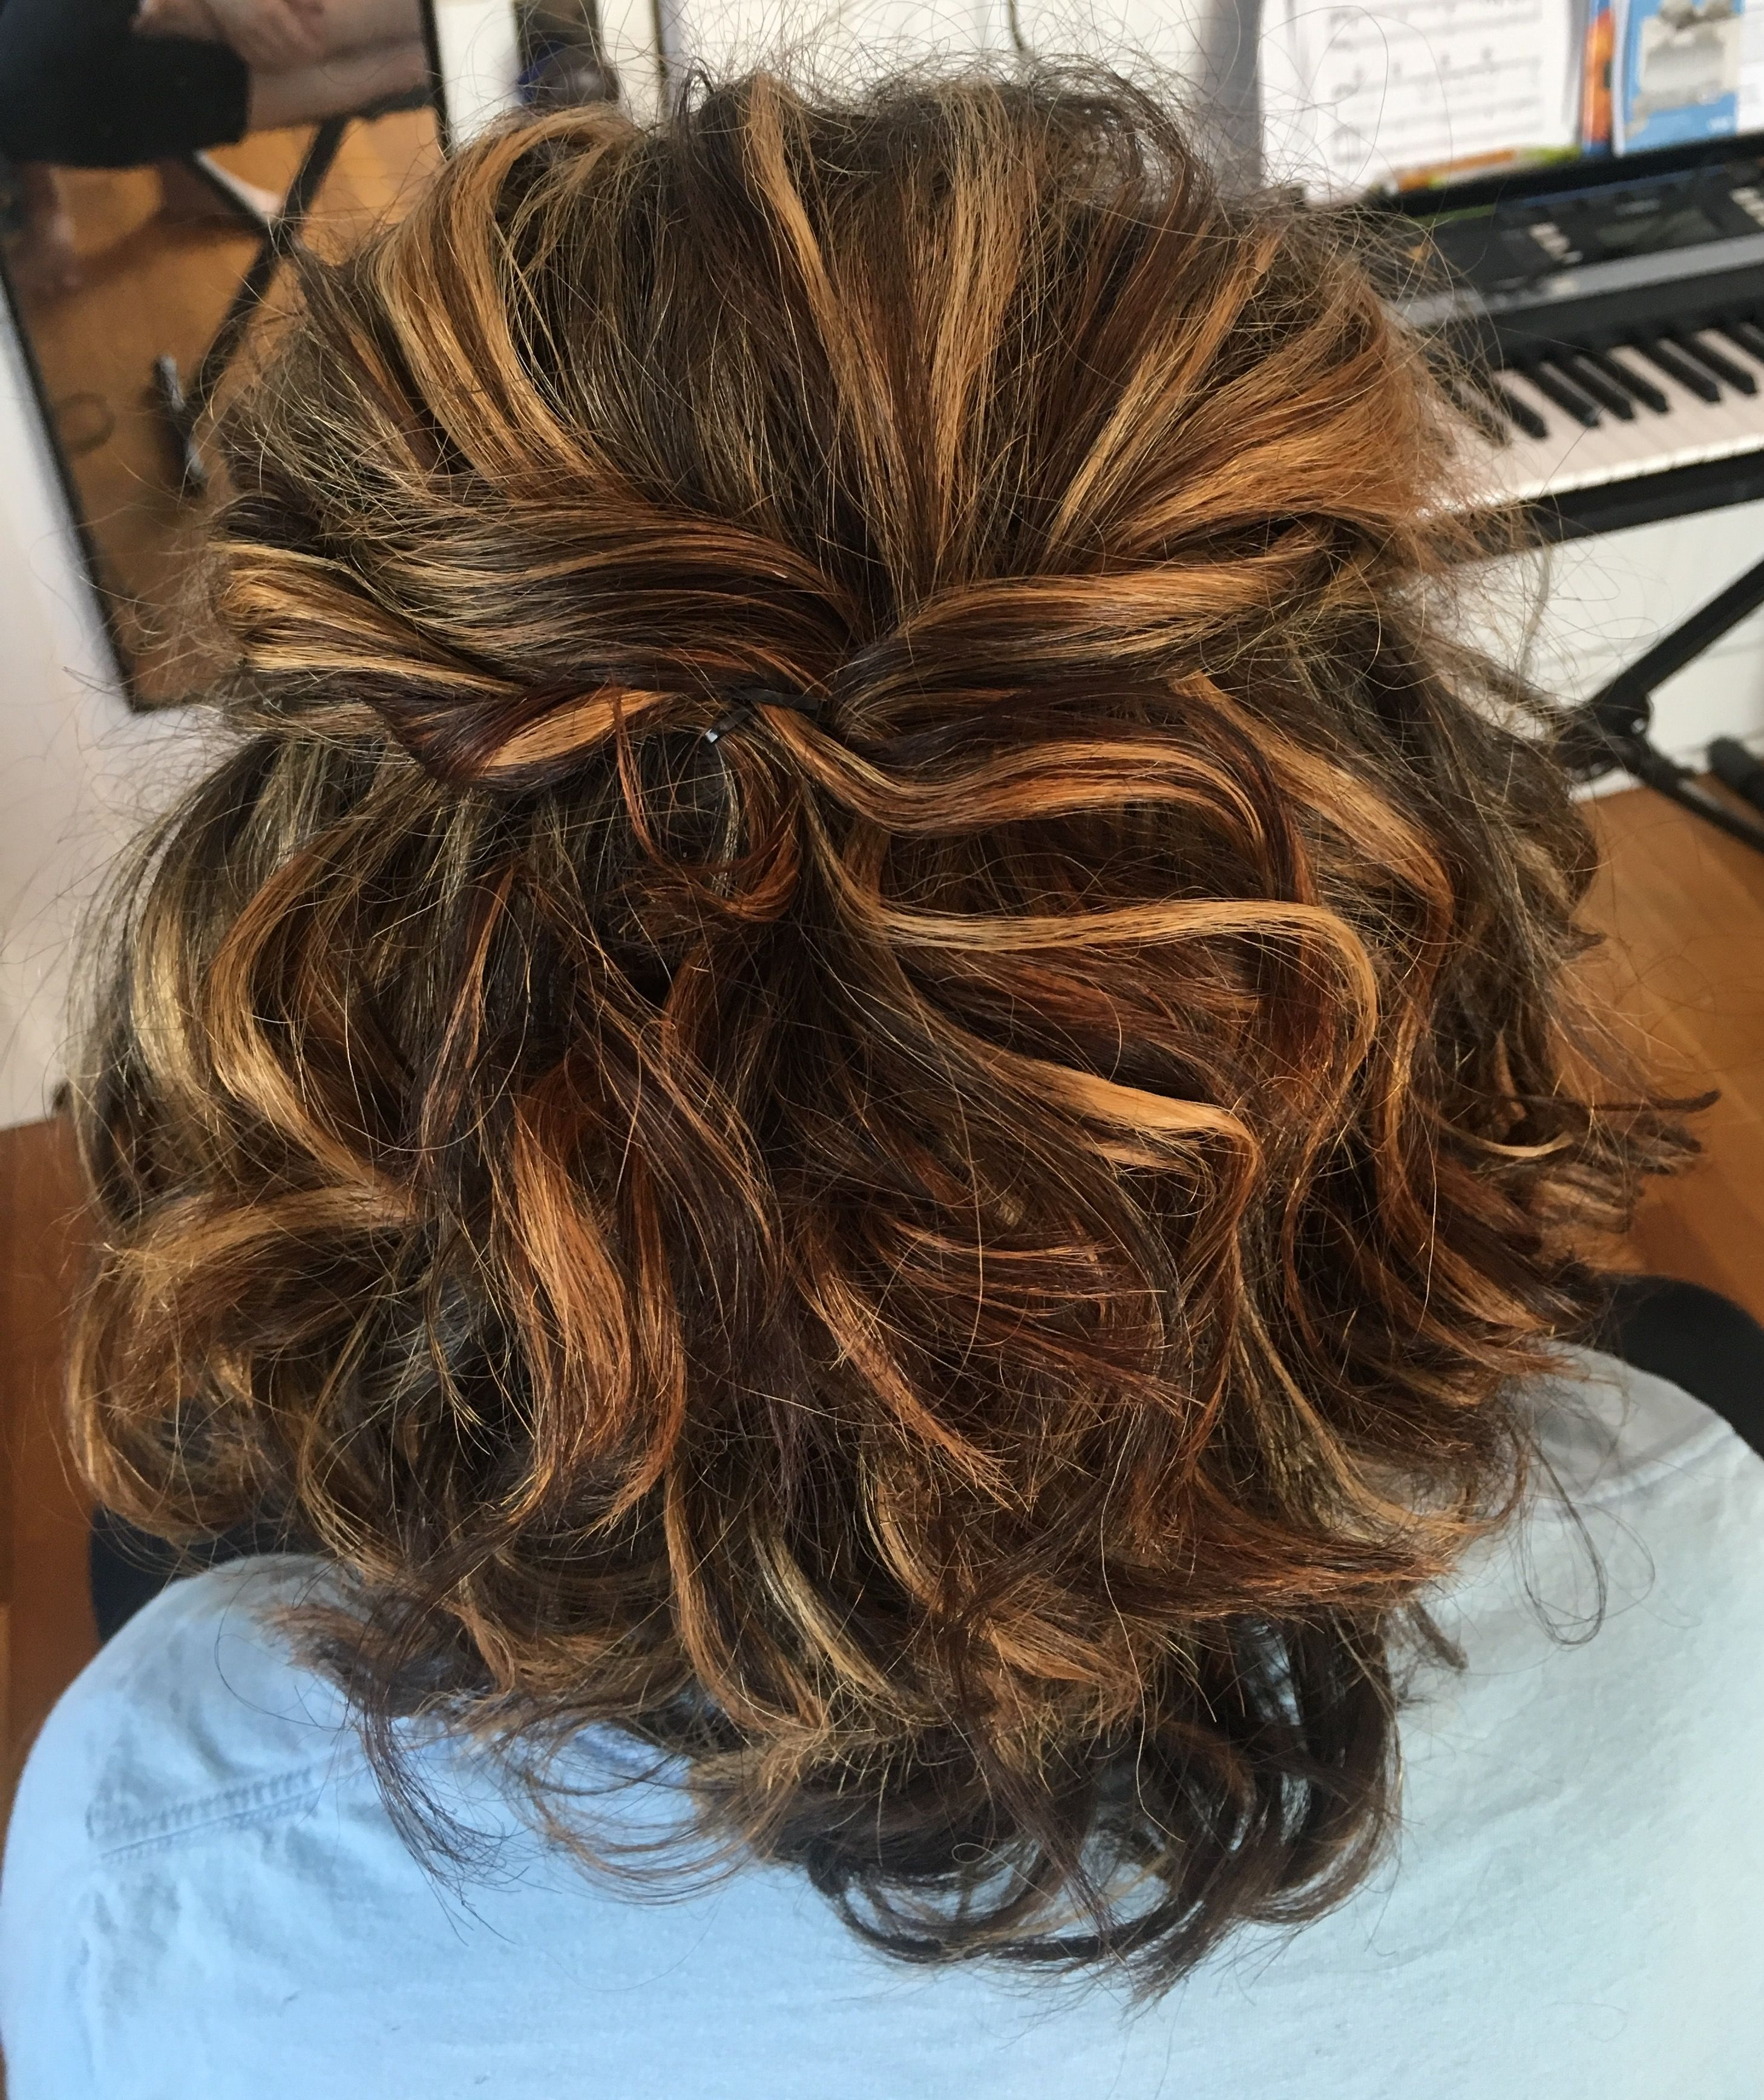 Prom hairstyle for shoulder length hair, half up half down ...